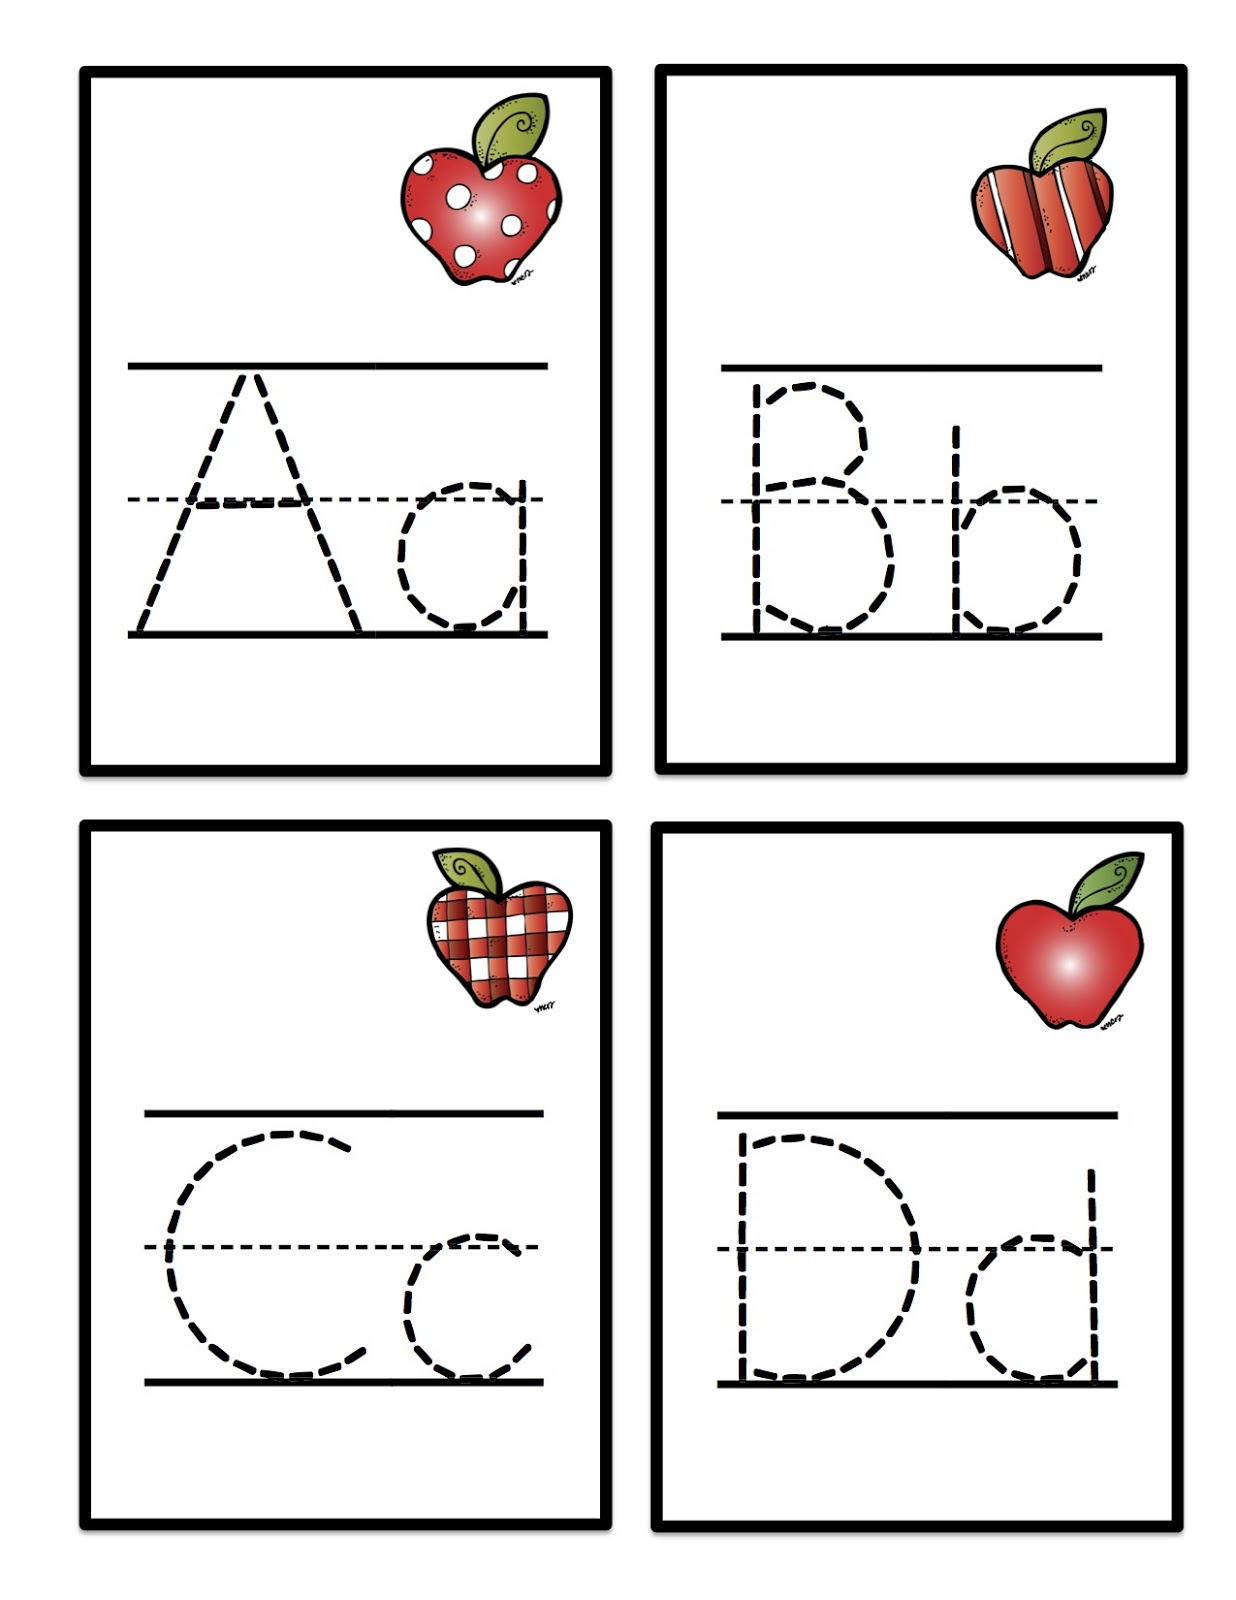 traceable alphabet templates - abc template trace search results calendar 2015